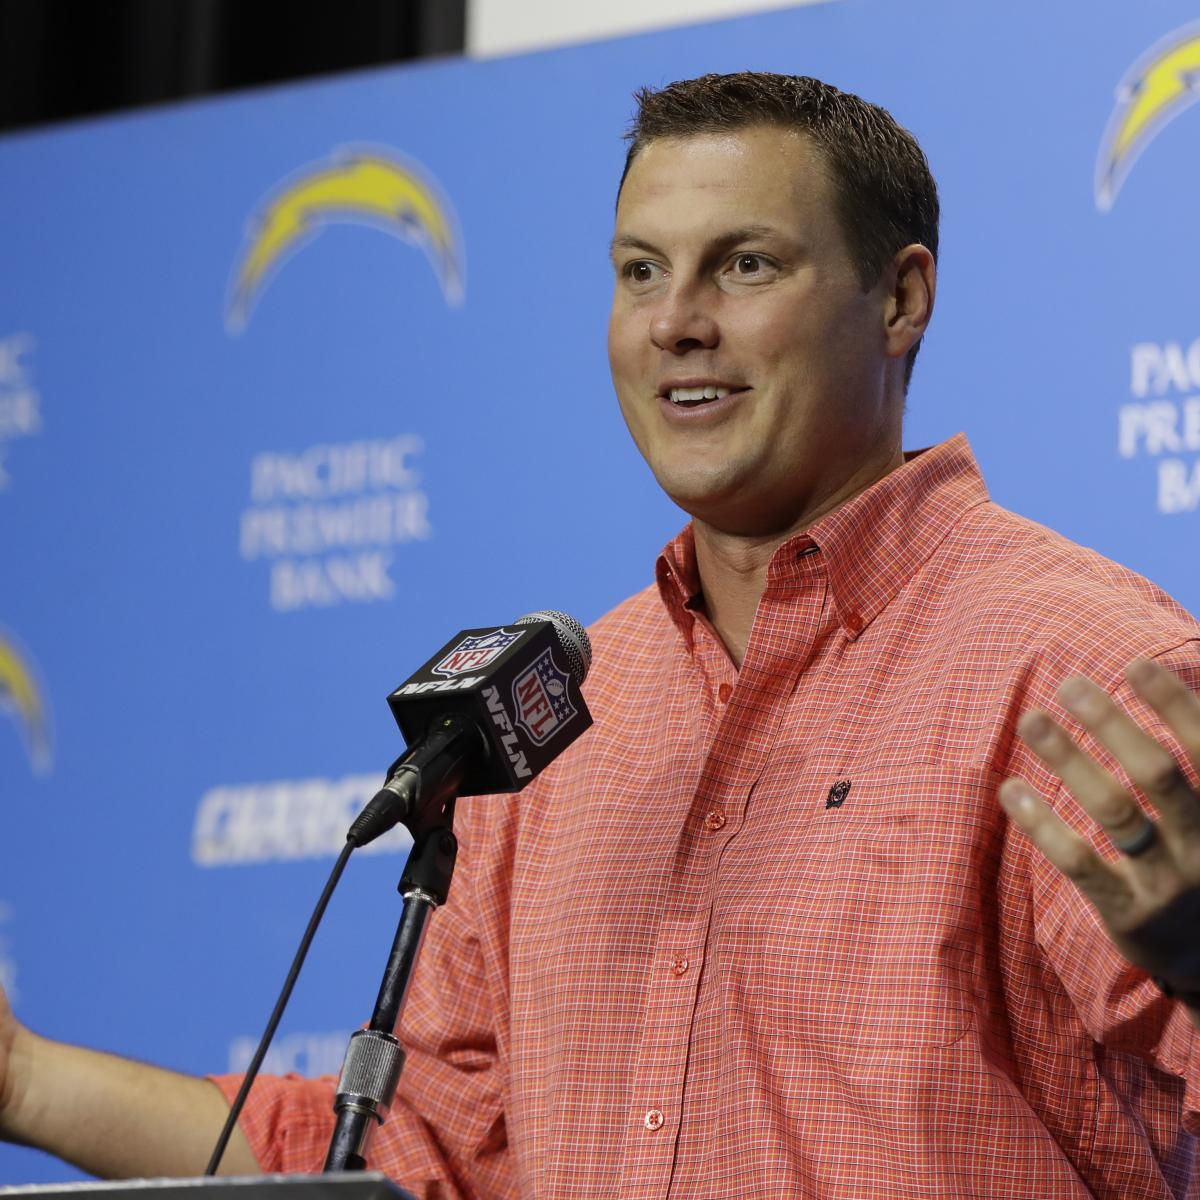 Philip Rivers Reportedly Agrees to 1-Year Contract with Colts Worth Around $25M